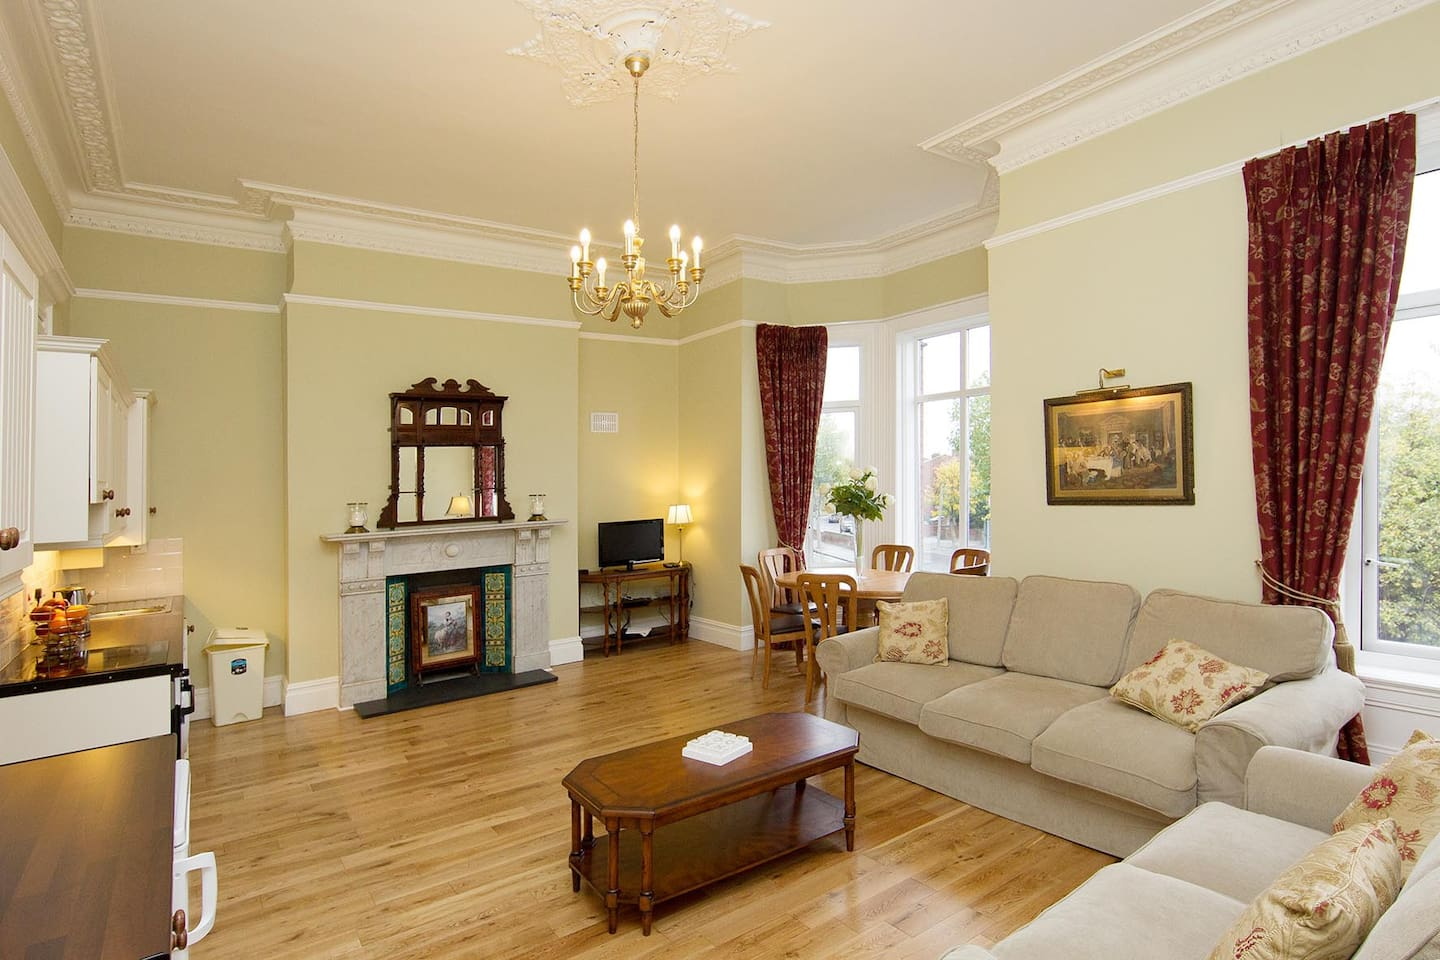 Spacious living area with 2 sofas, dining area for 6 people, kitchen, fireplace and beautiful bay window